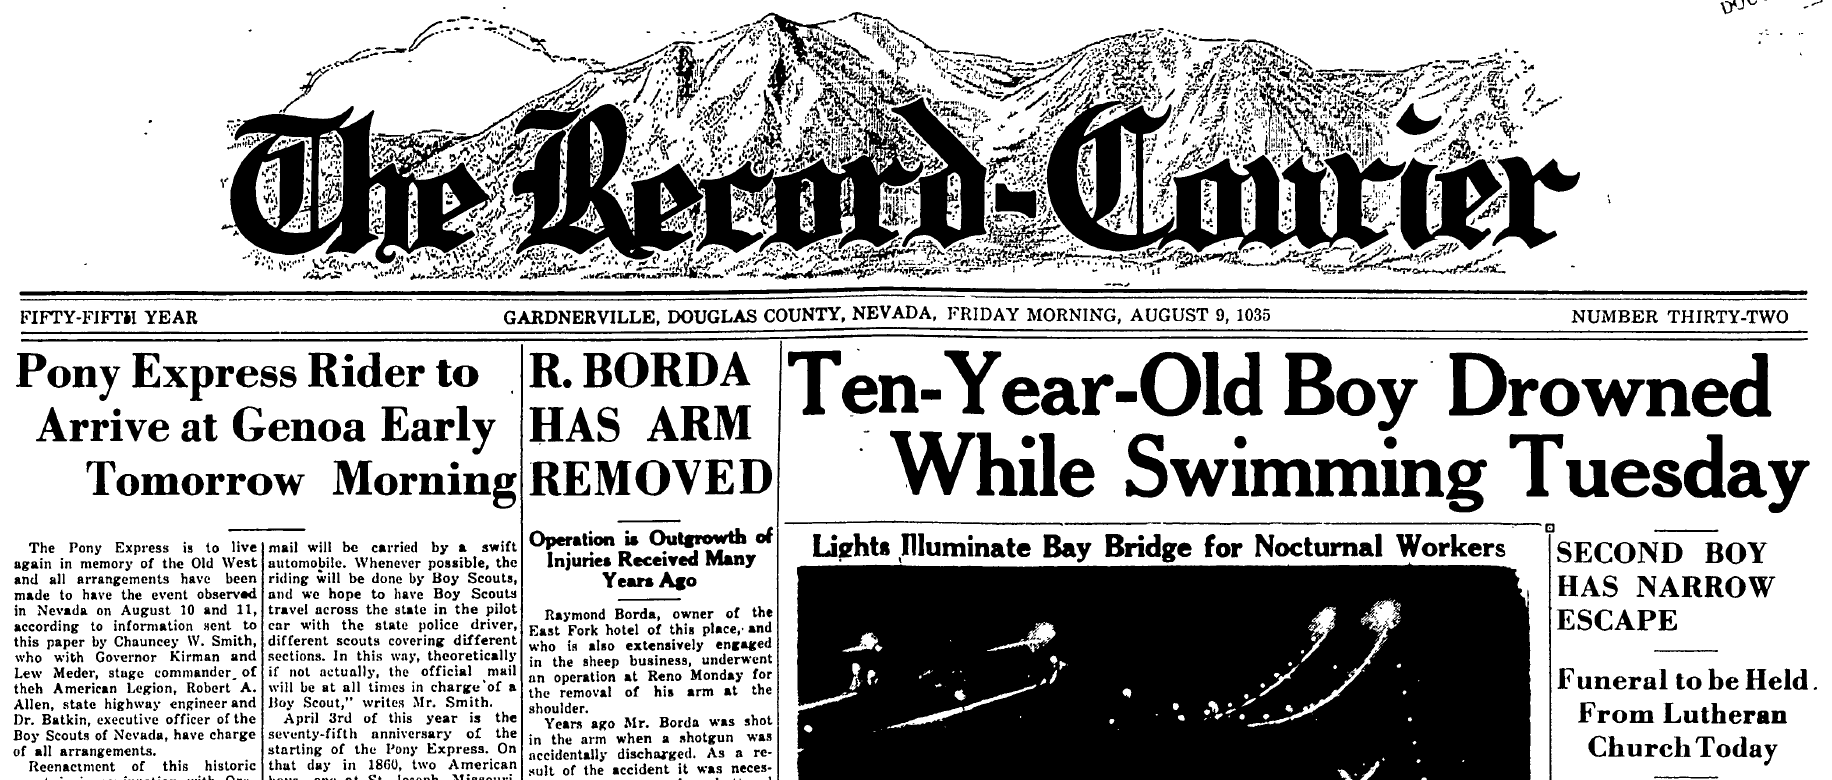 Record Courier Roy Thran Drowning headline